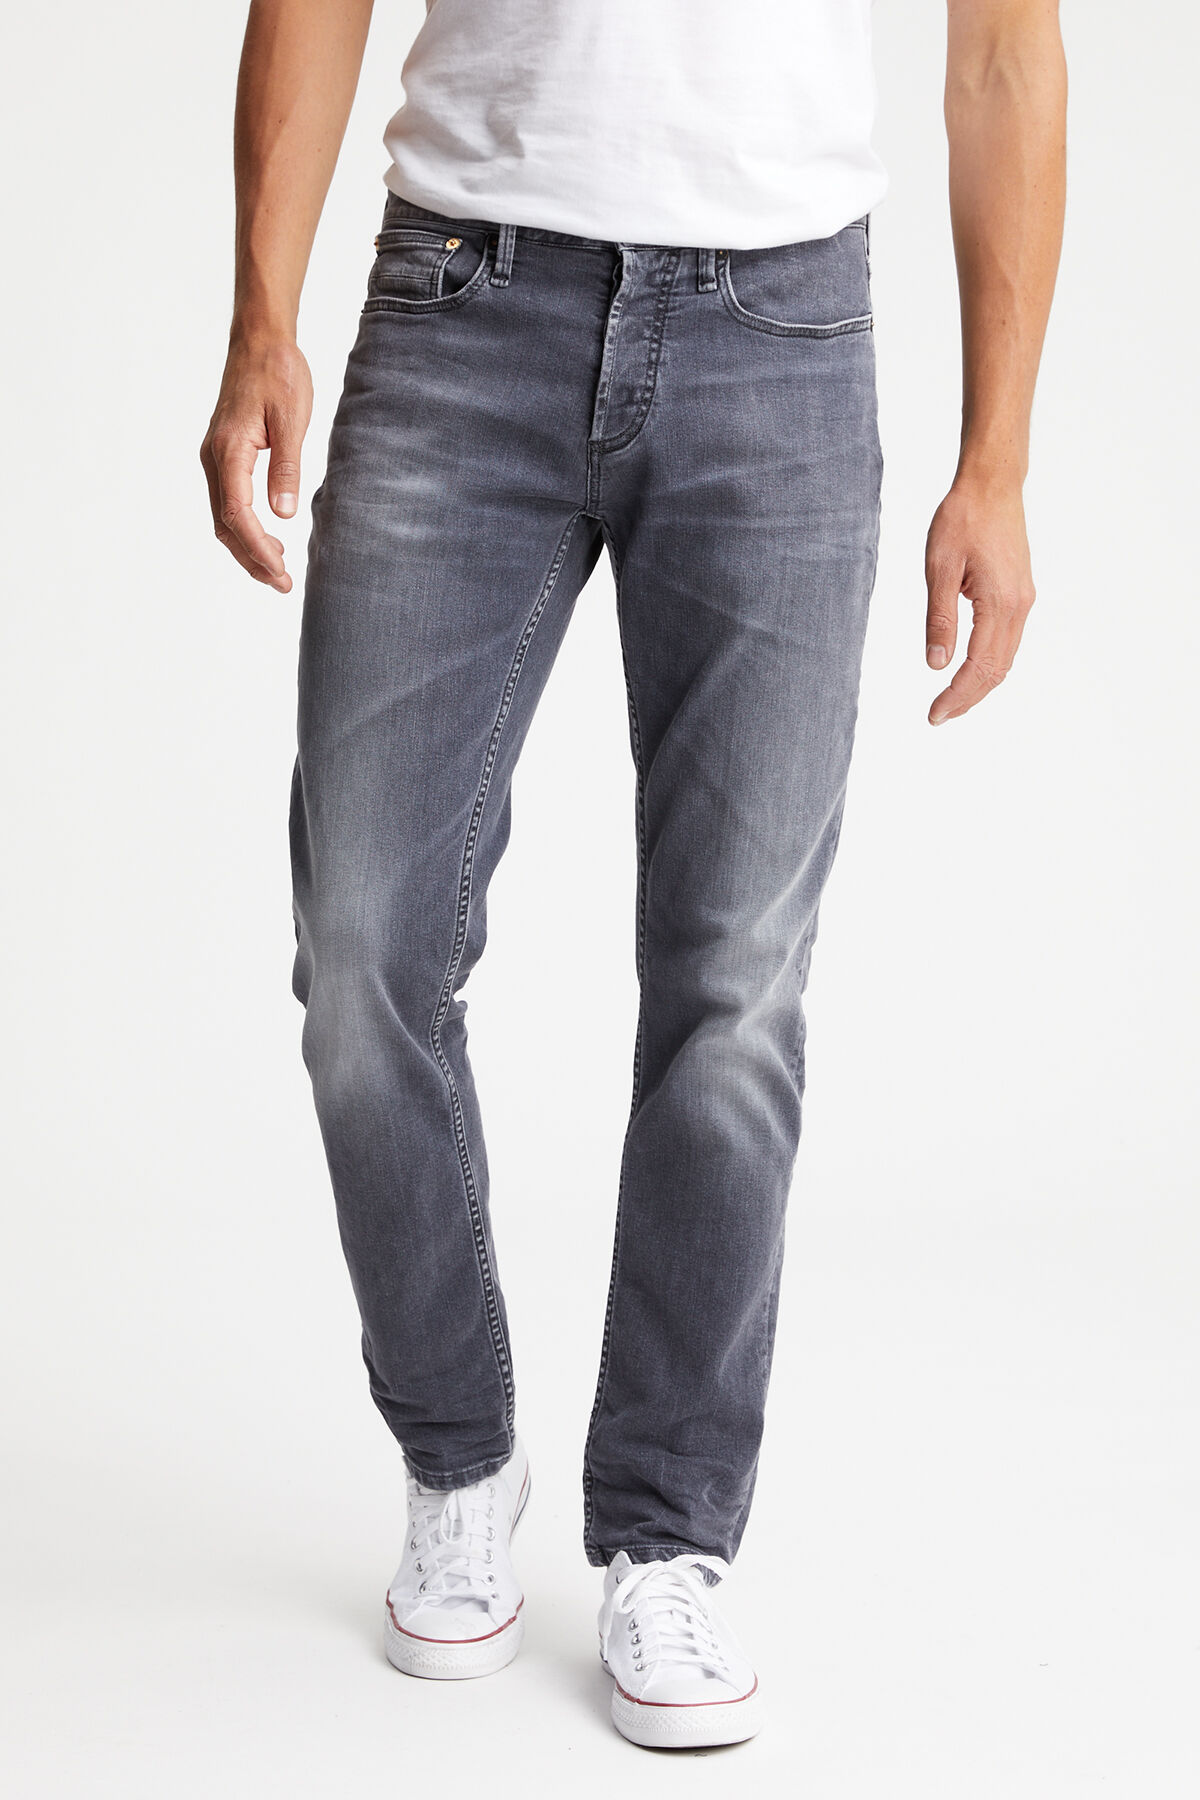 HAMMER Authentic Worn-In Grey Denim - Athletic Fit